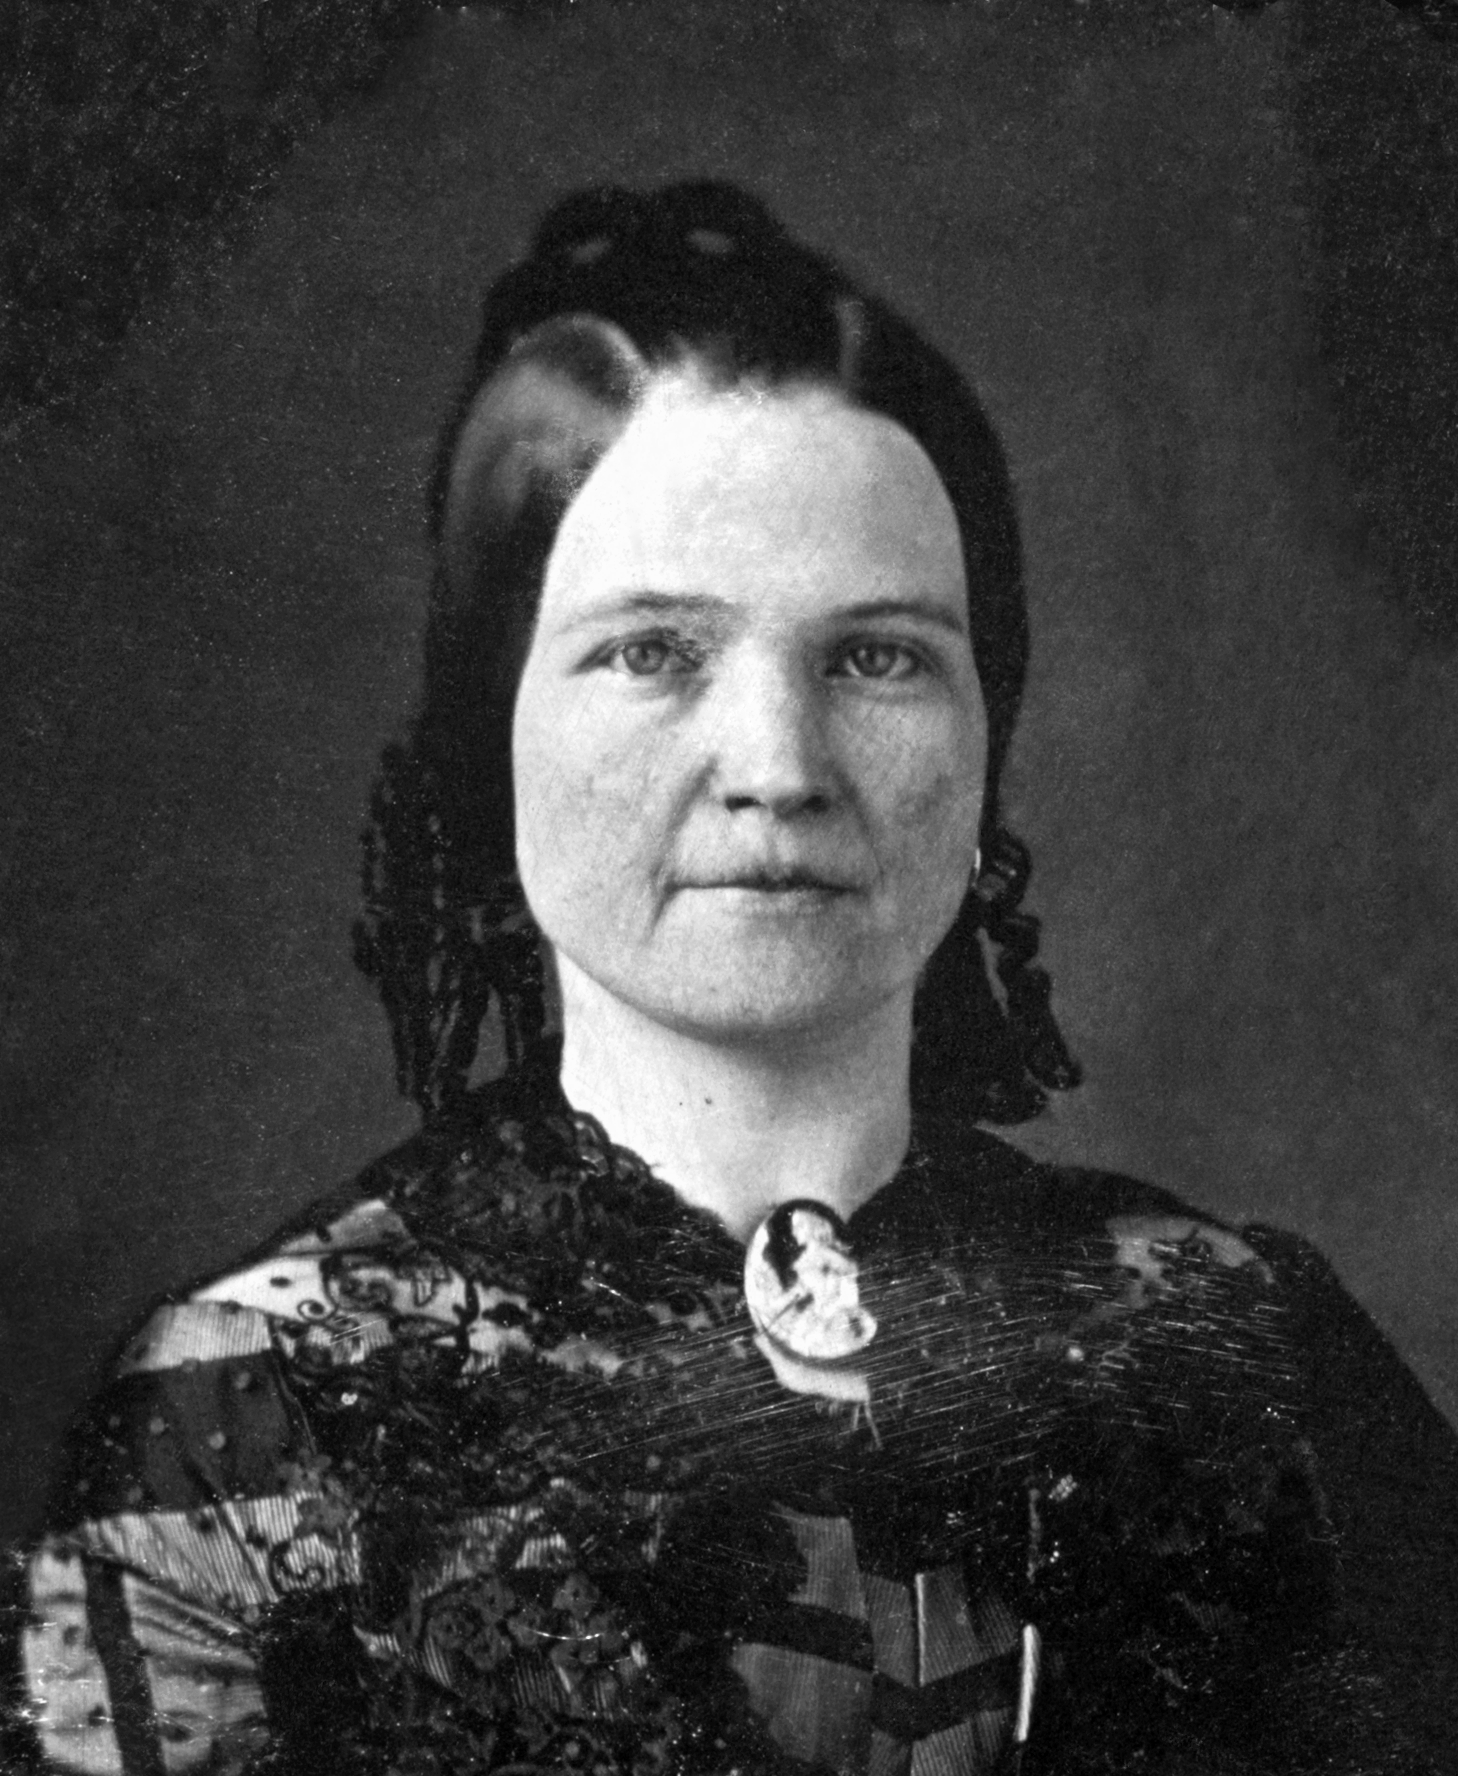 Mary Todd Lincoln in a photograph taken circa 1846-1847 at the age of 28.